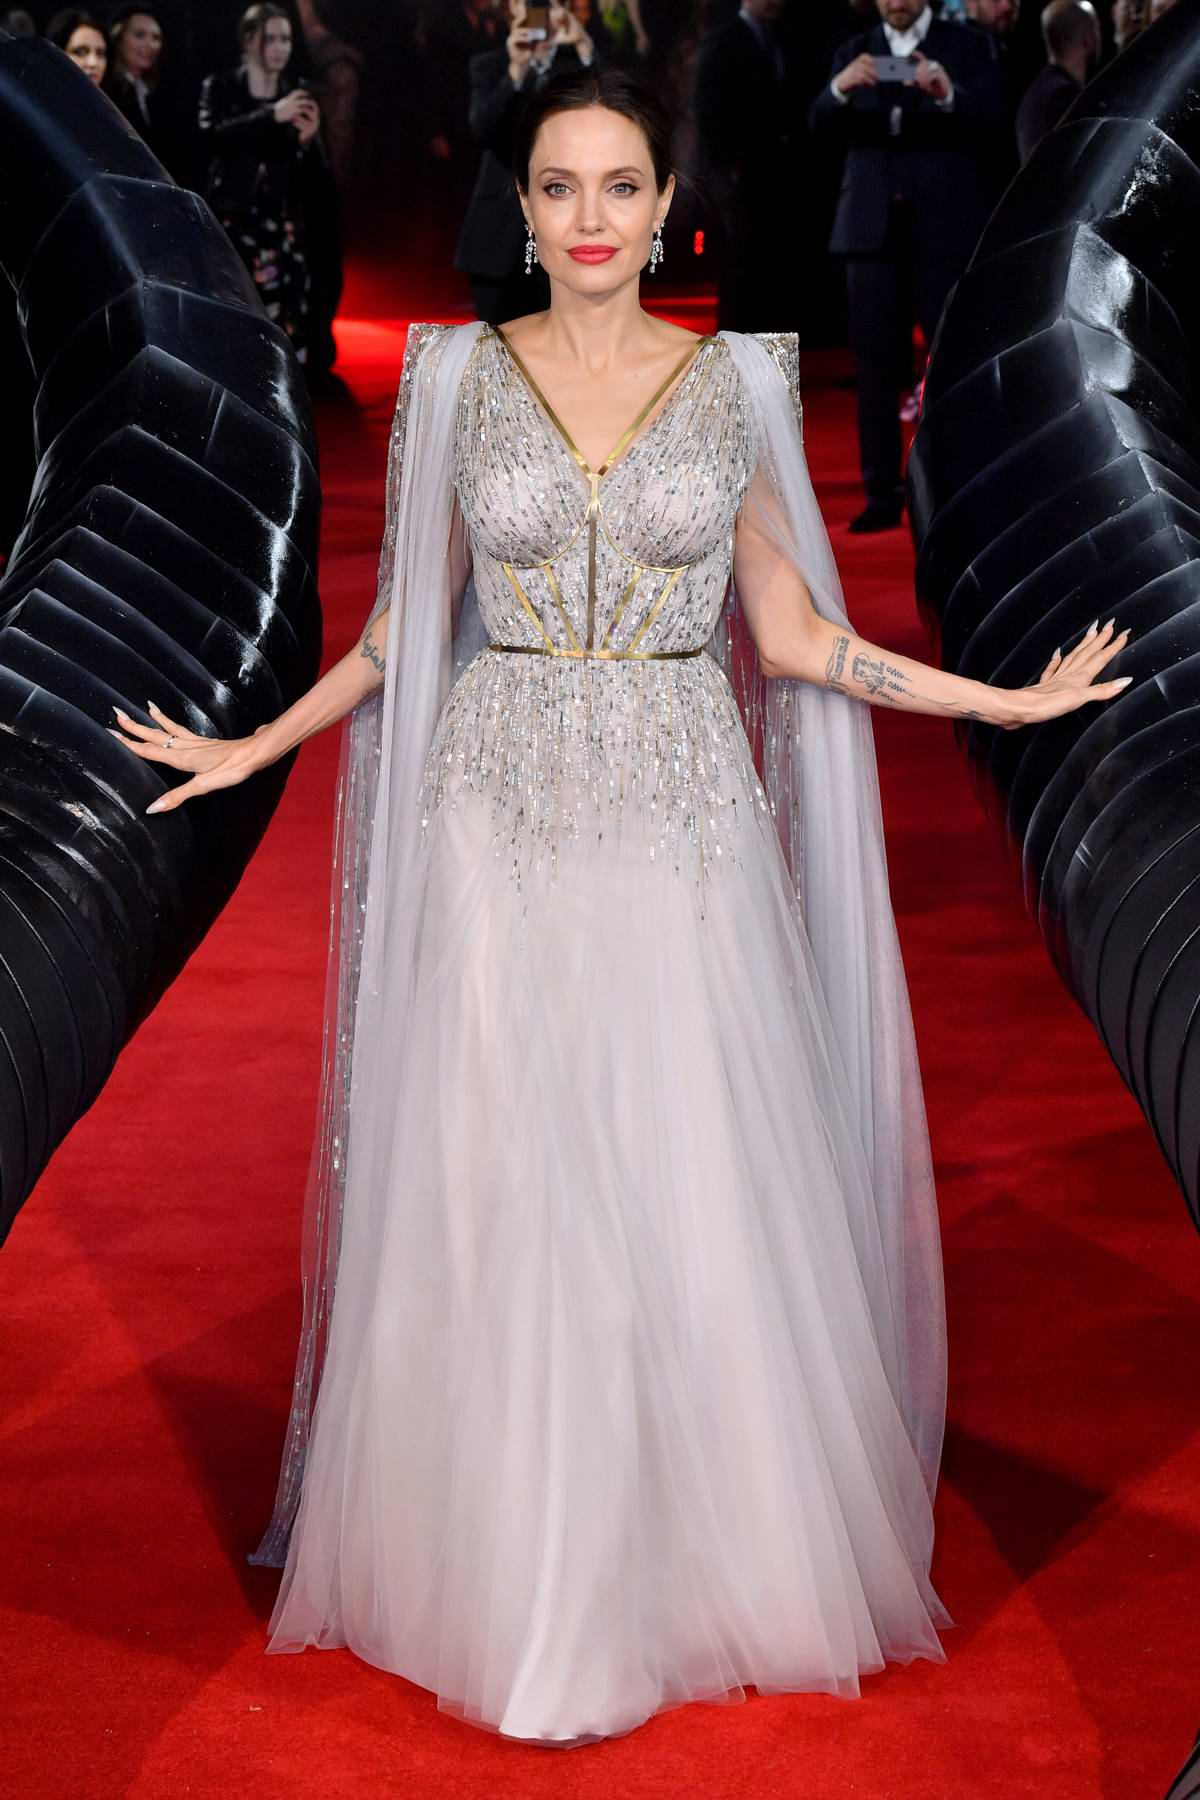 Angelina Jolie attends the European Premiere of Maleficent: Mistress of Evil at IMAX Waterloo in London, UK